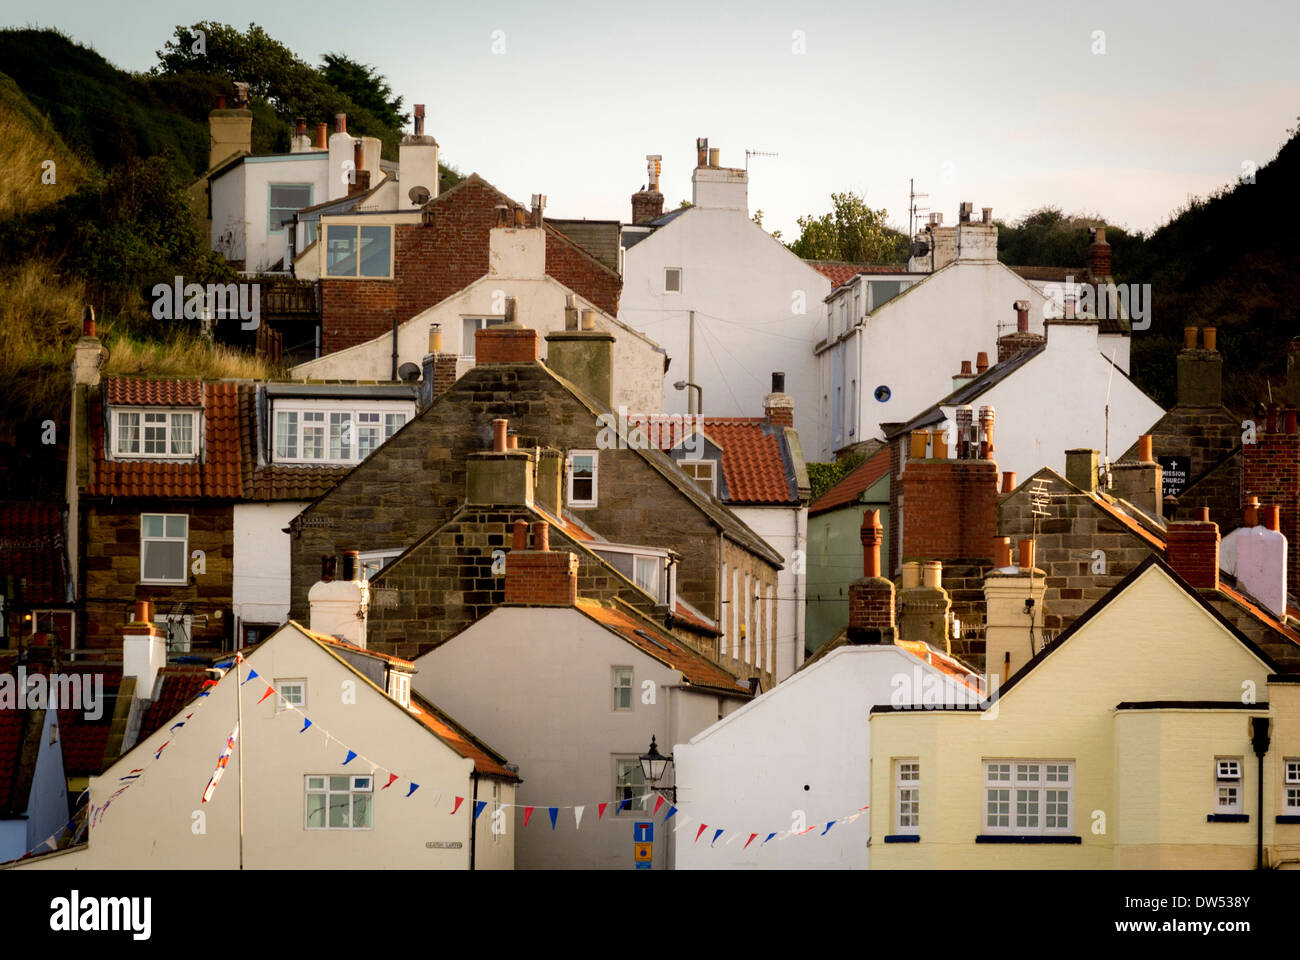 Rooftops and Chimneys, Staithes, Yorkshire, UK. - Stock Image